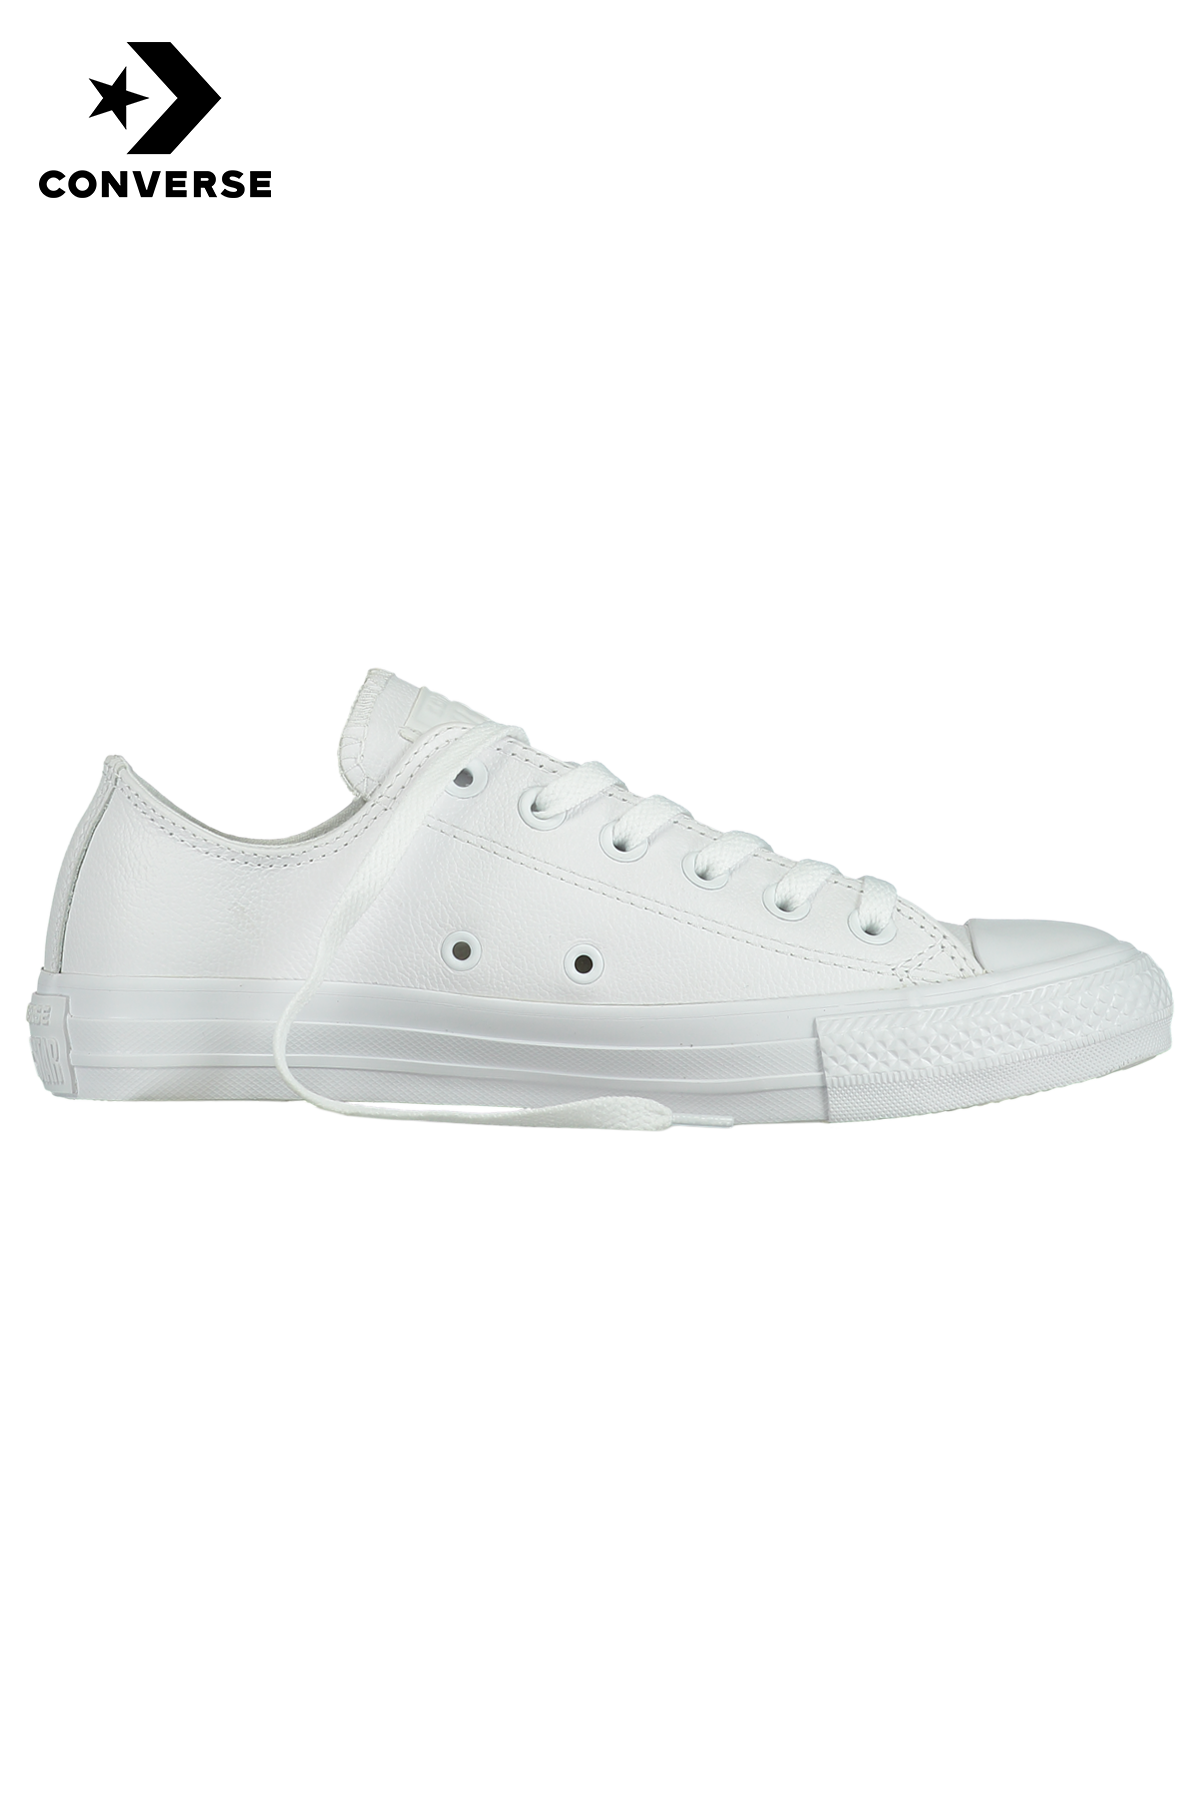 Converse All Stars All star OX leather